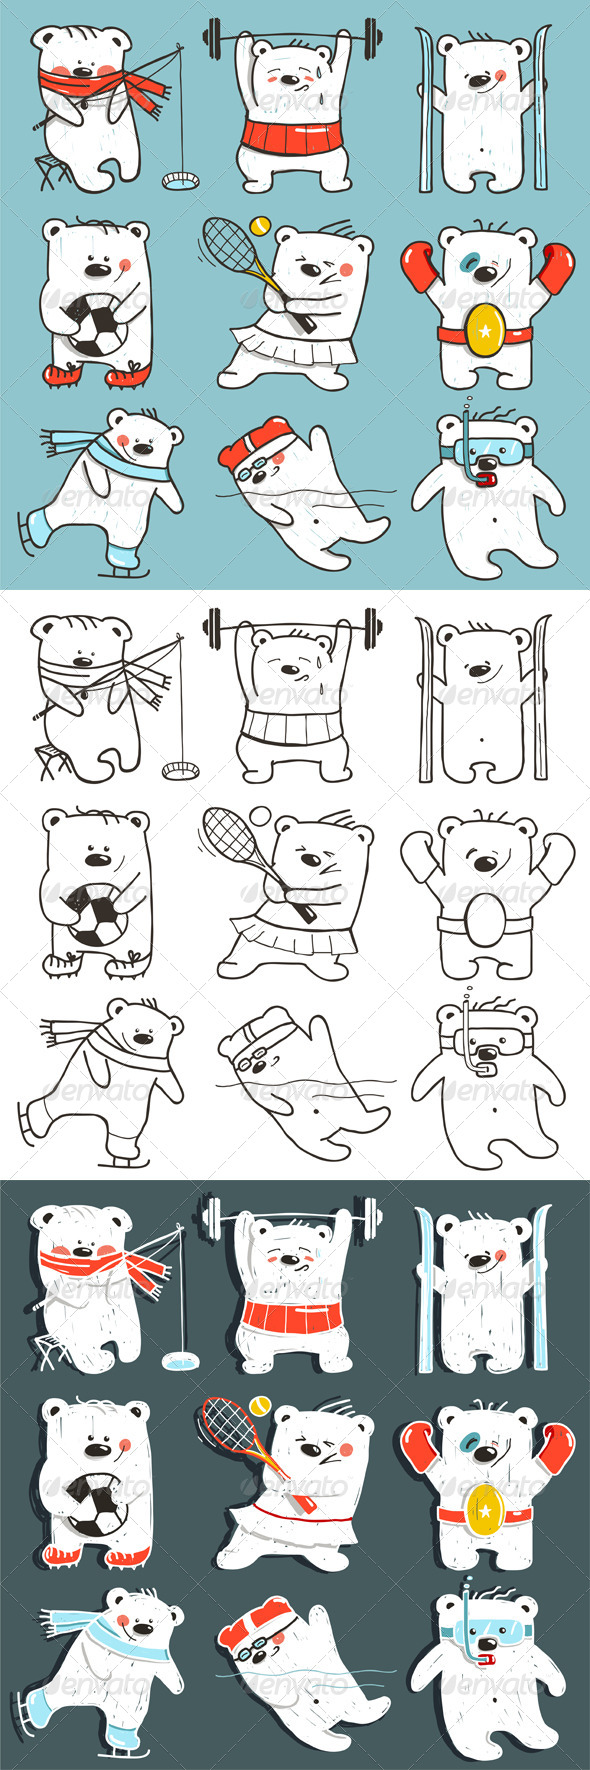 GraphicRiver Cartoon Sport Bears in Action Collection 8732864